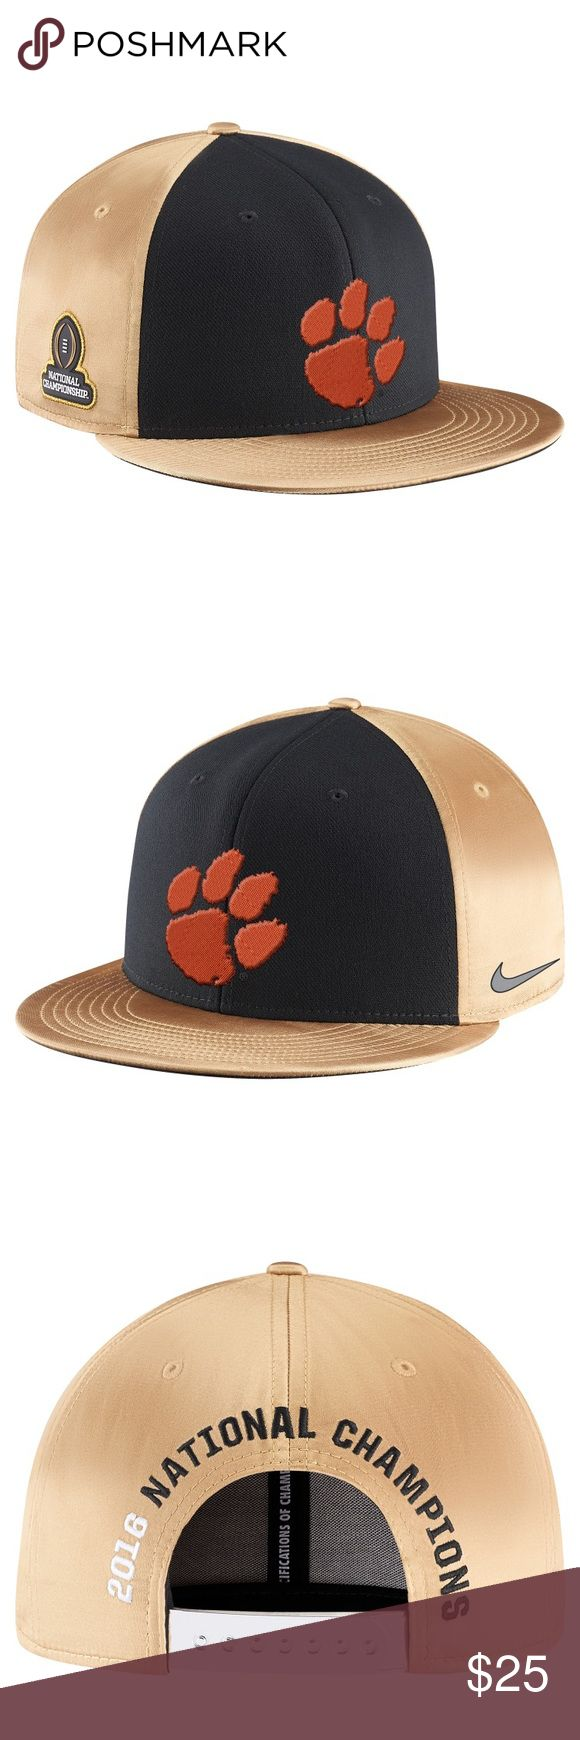 Nike True Clemson Tigers 2016 Championship Hat Brand: Nike  Size : Adjustable  Color: Black/Vegas Gold  Celebrate the Clemson Tigers bringing home the trophy when you get this College Football Playoff 2016 National Champions Locker Room Players True adjustable snapback hat from Nike.  Product ID: #2659601  Material: 97% Polyester/3% Spandex  Mid Crown  Structured fit  Flat bill  Snapback  Dri-FIT ® technology wicks away moisture  Embroidered graphics  One size fits most  Six panel…